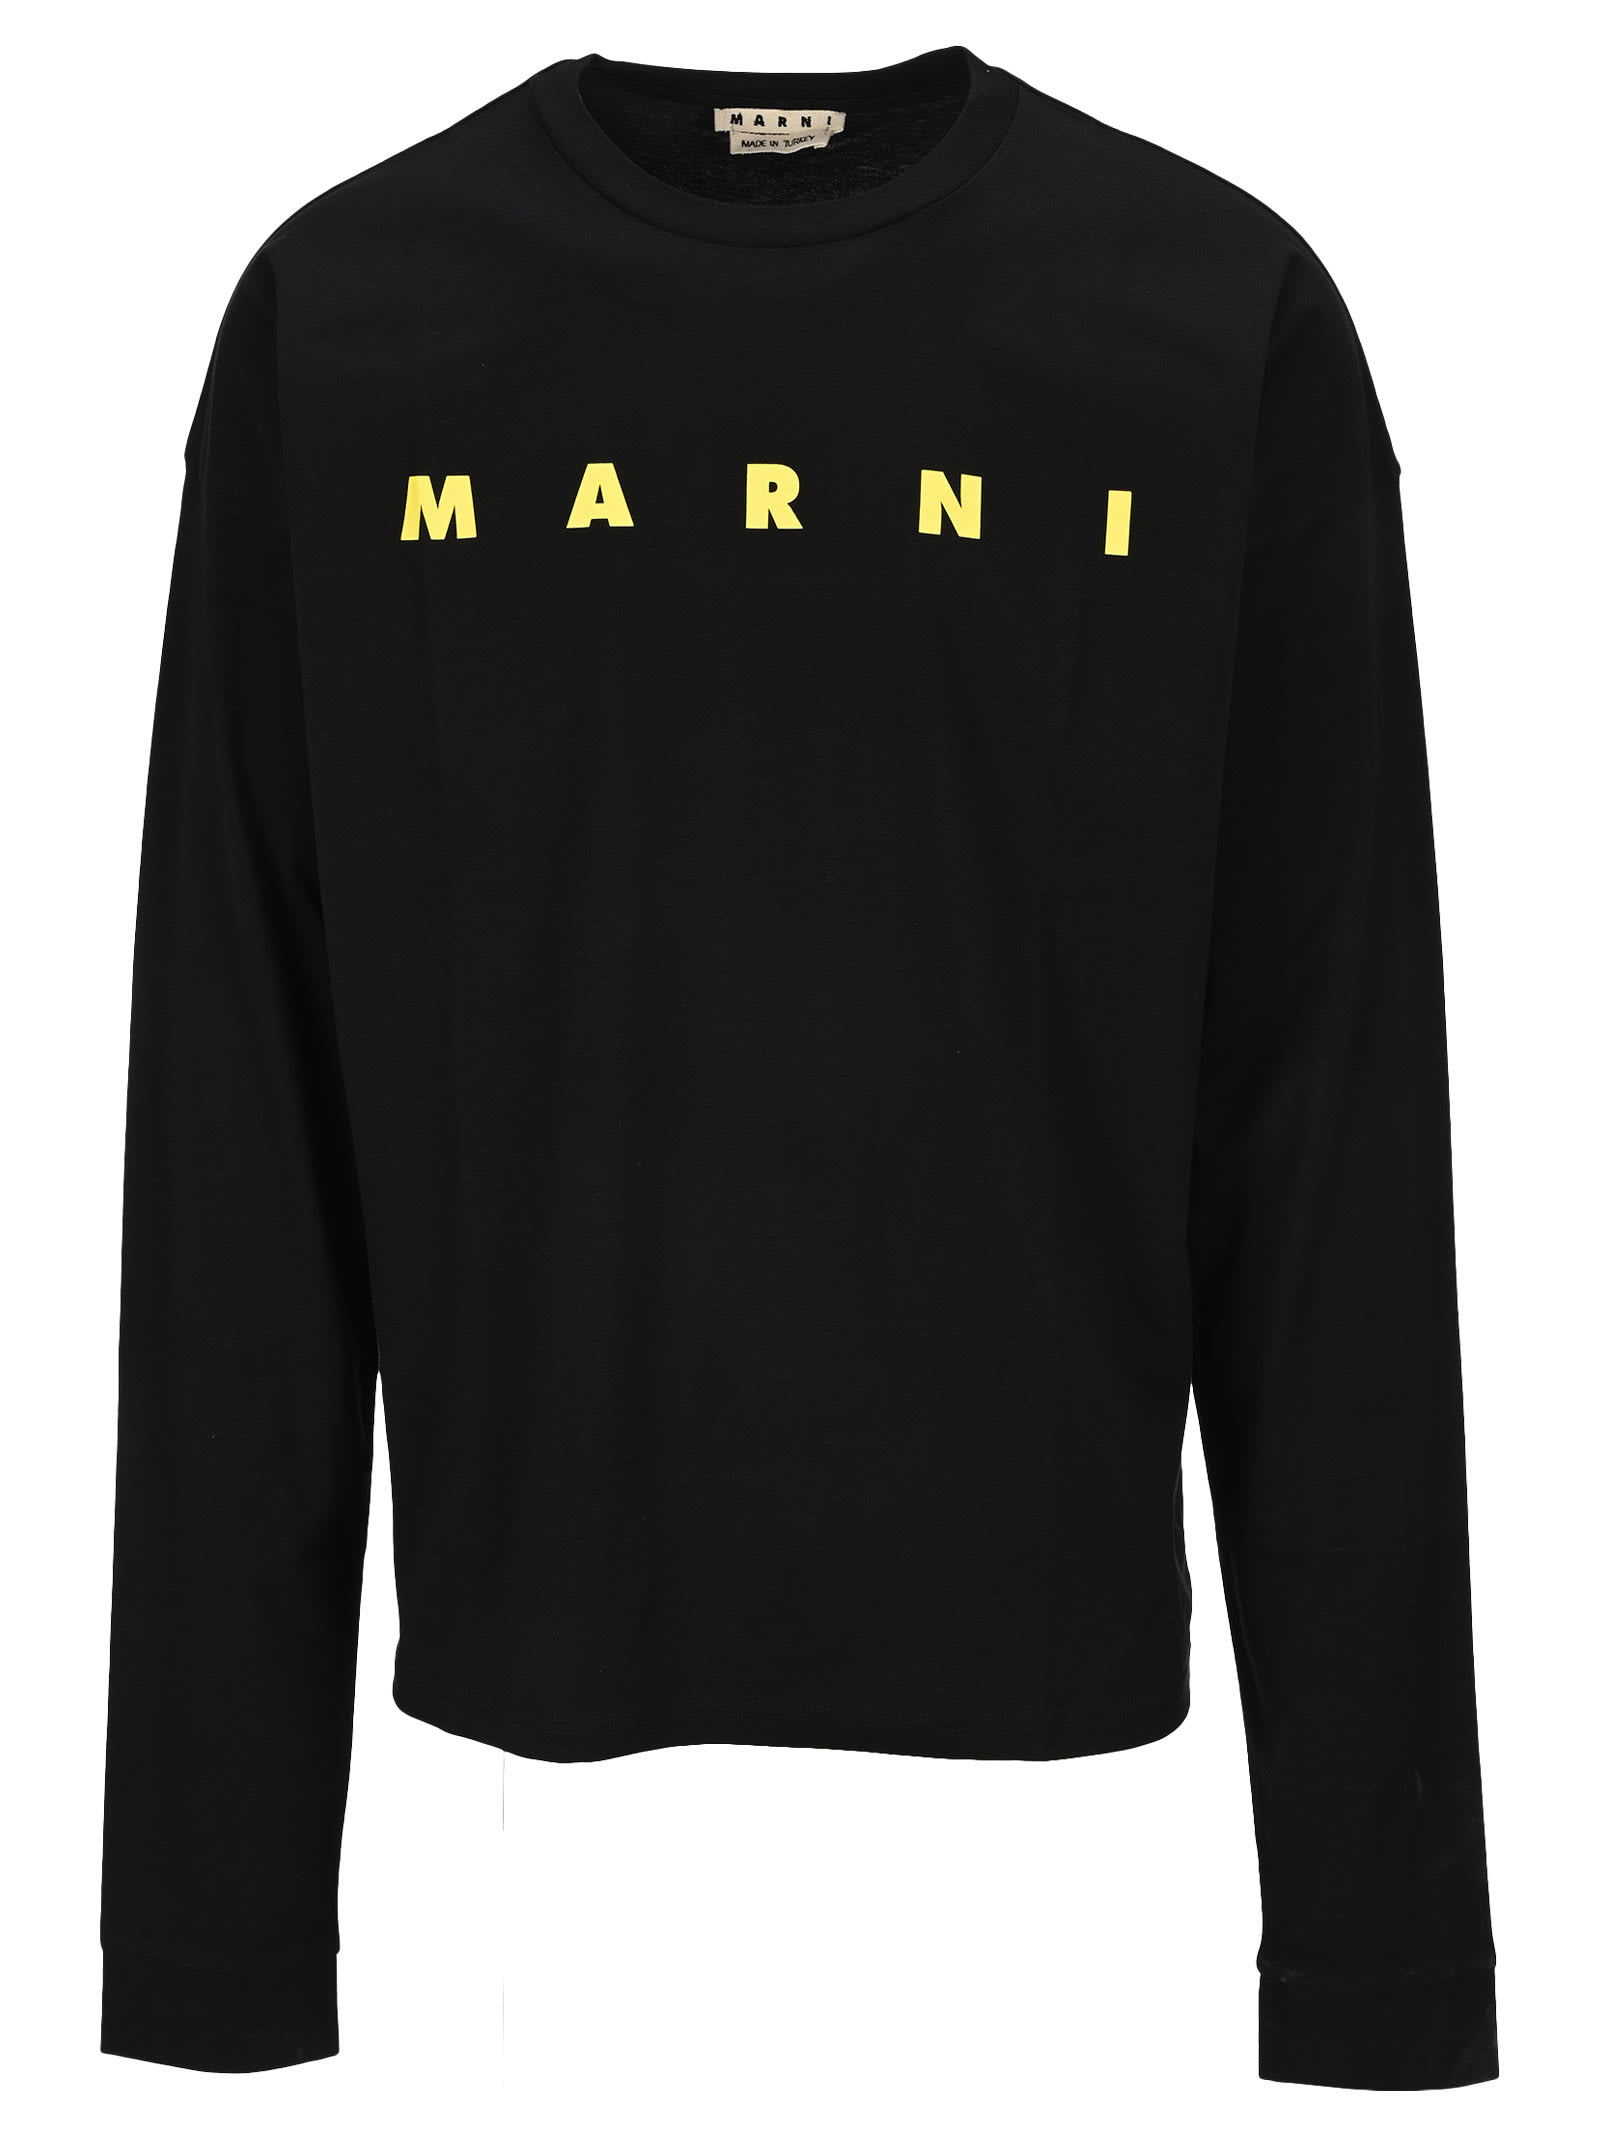 Marni Long Sleeved Organic Jersey T-shirt In Black